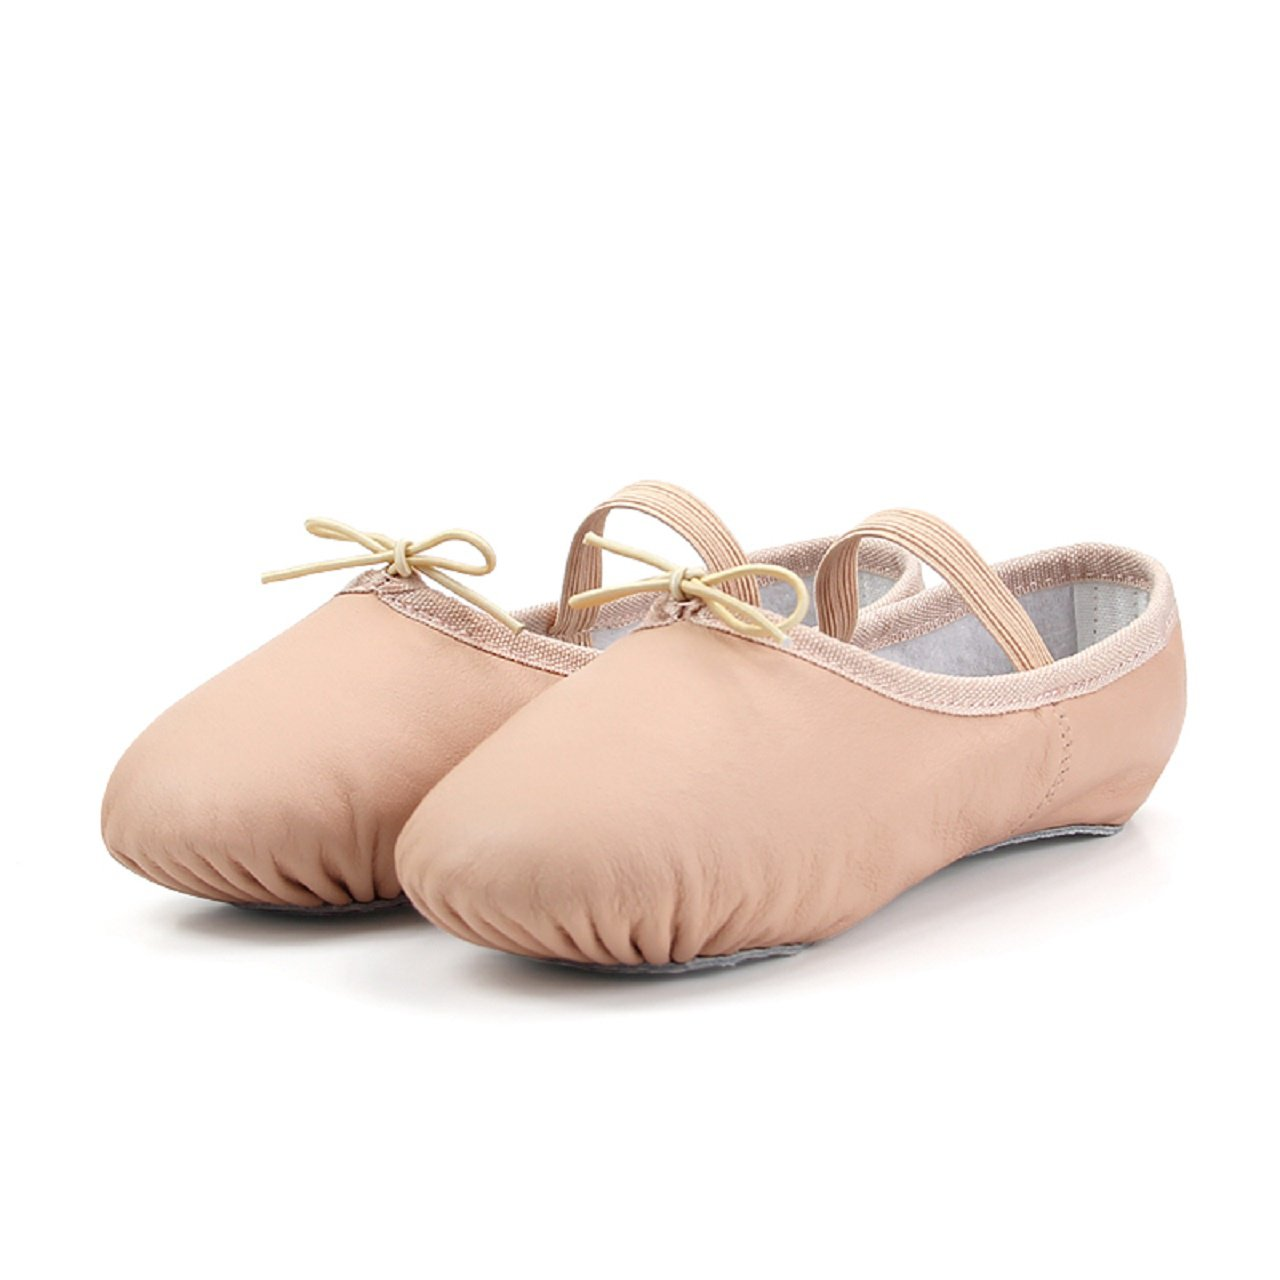 DANCE YOU 1102-1 Girls Ballet Slipper Leather Full Sole Ballet Shoes for Toddler/Little Kid Pink Size Big Kid 3.5M/220mm